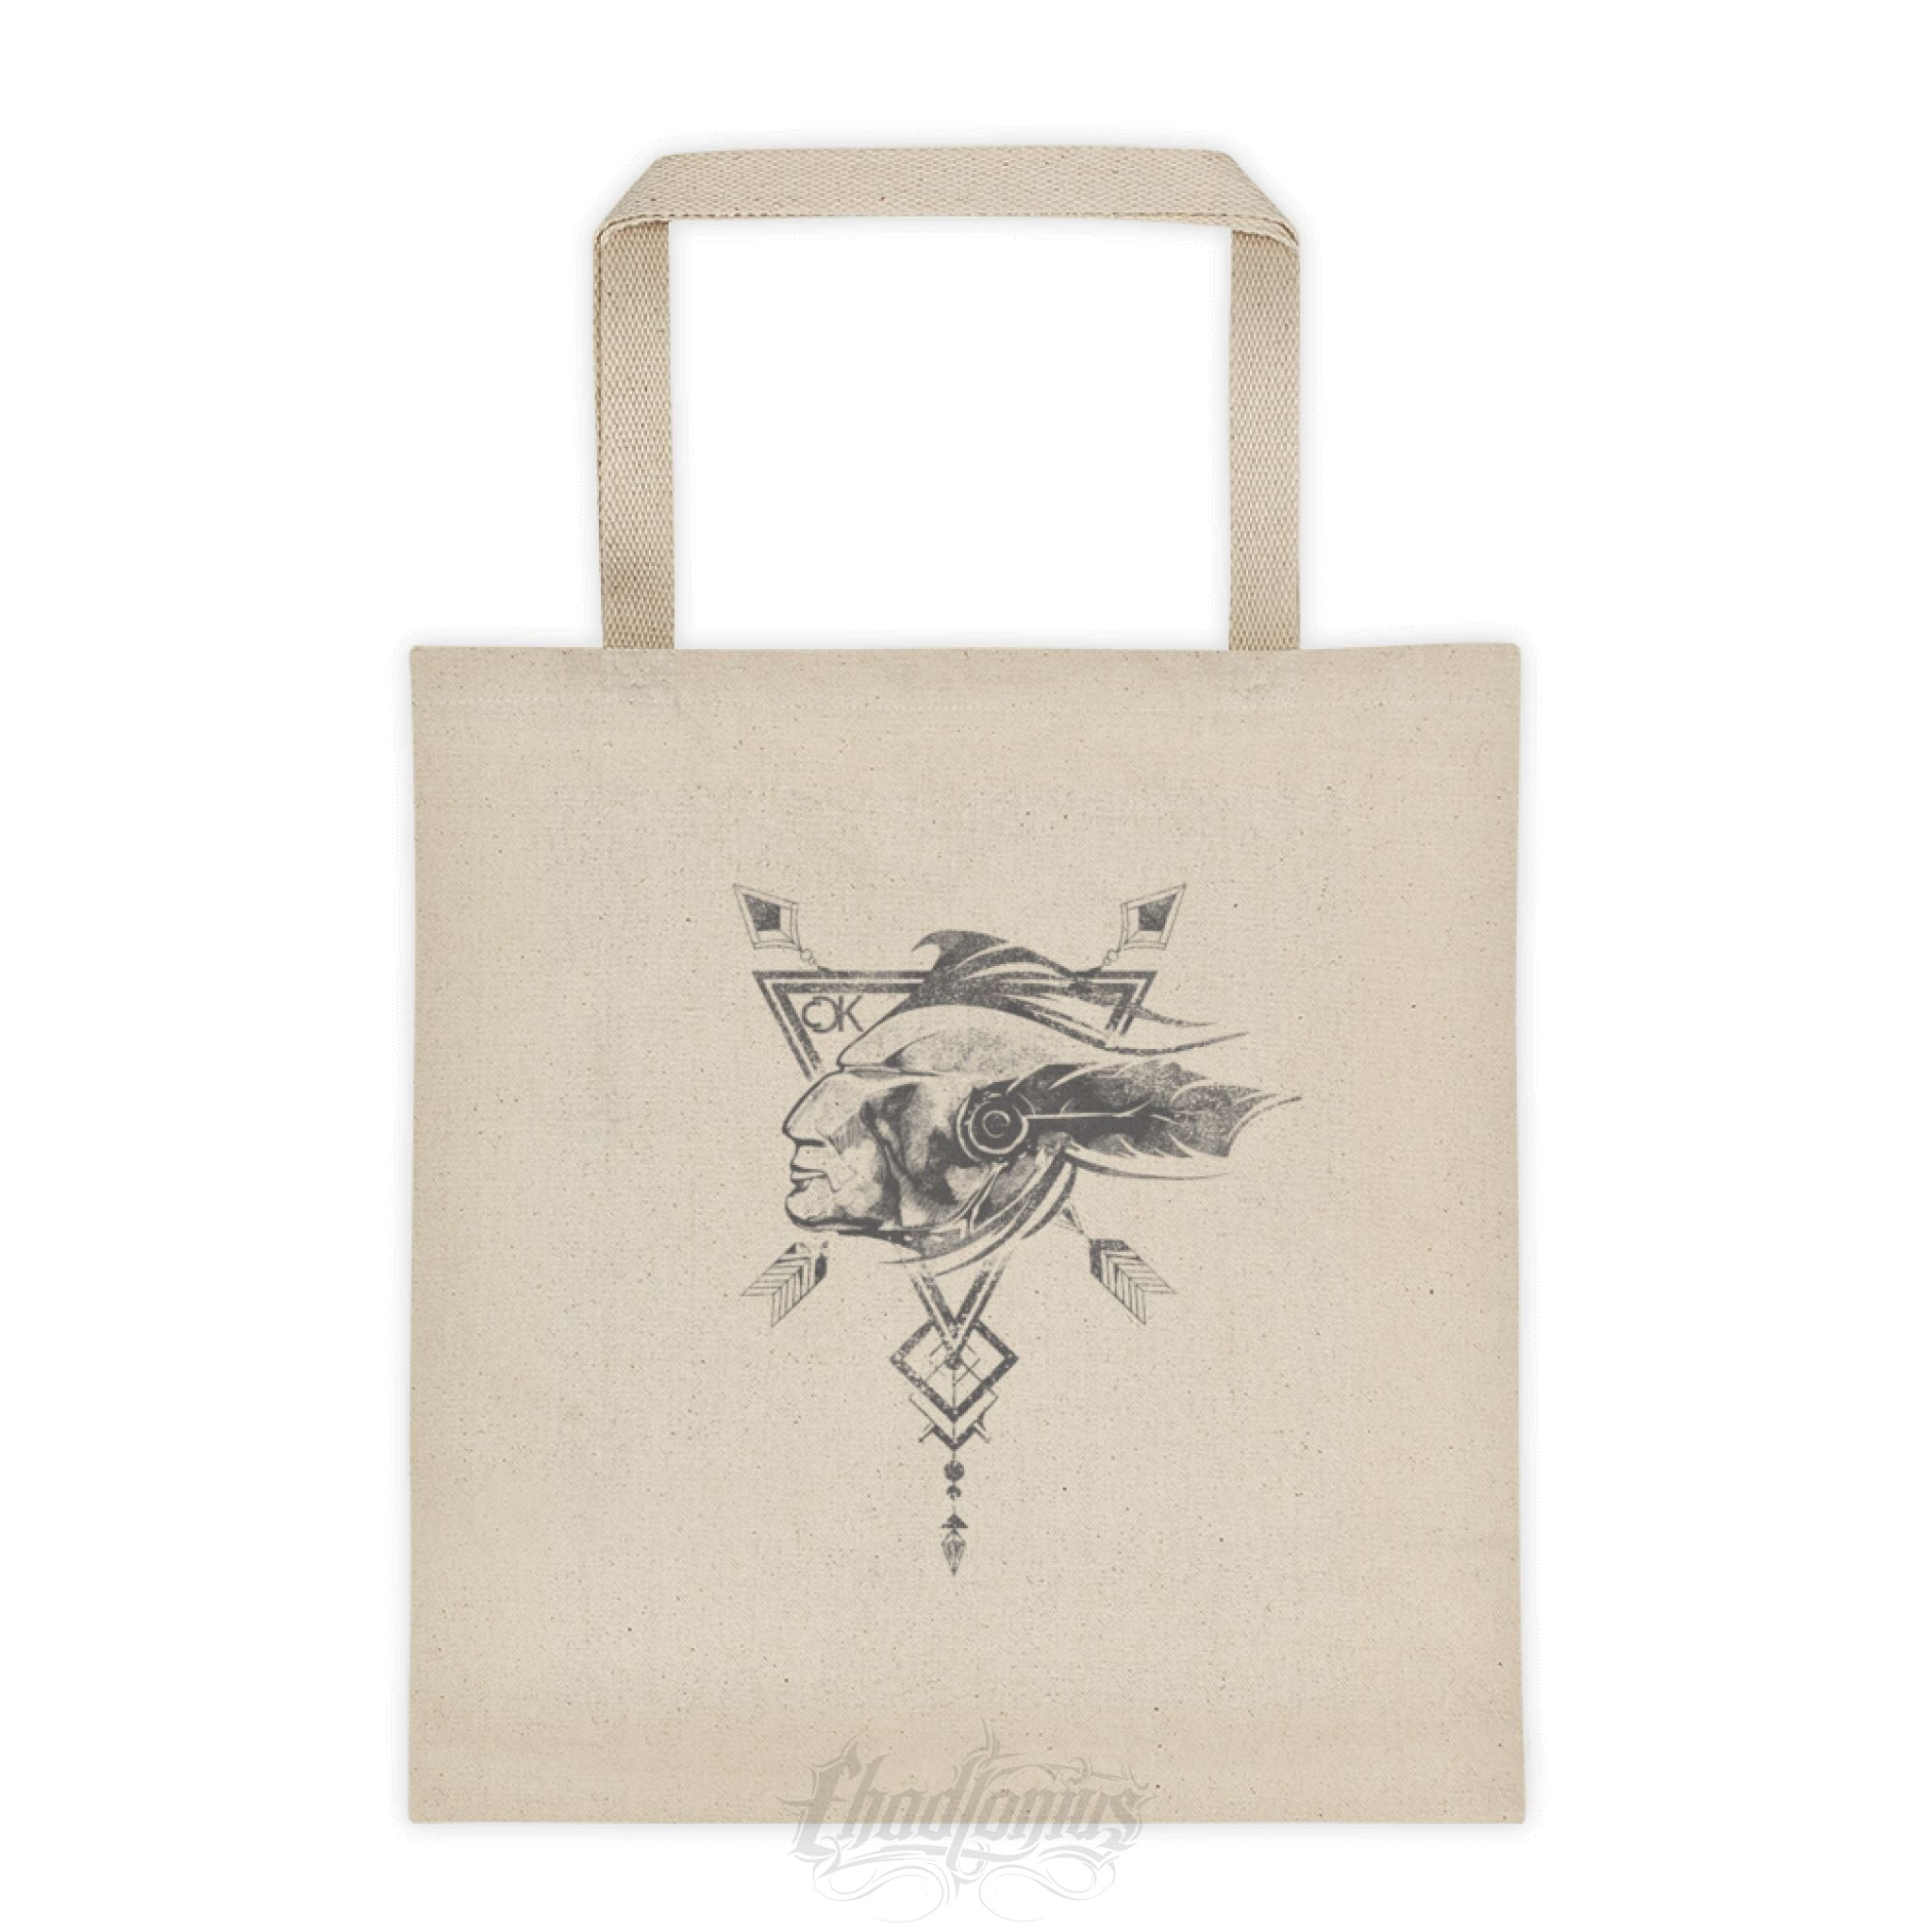 THE NATIVE - Tote bag